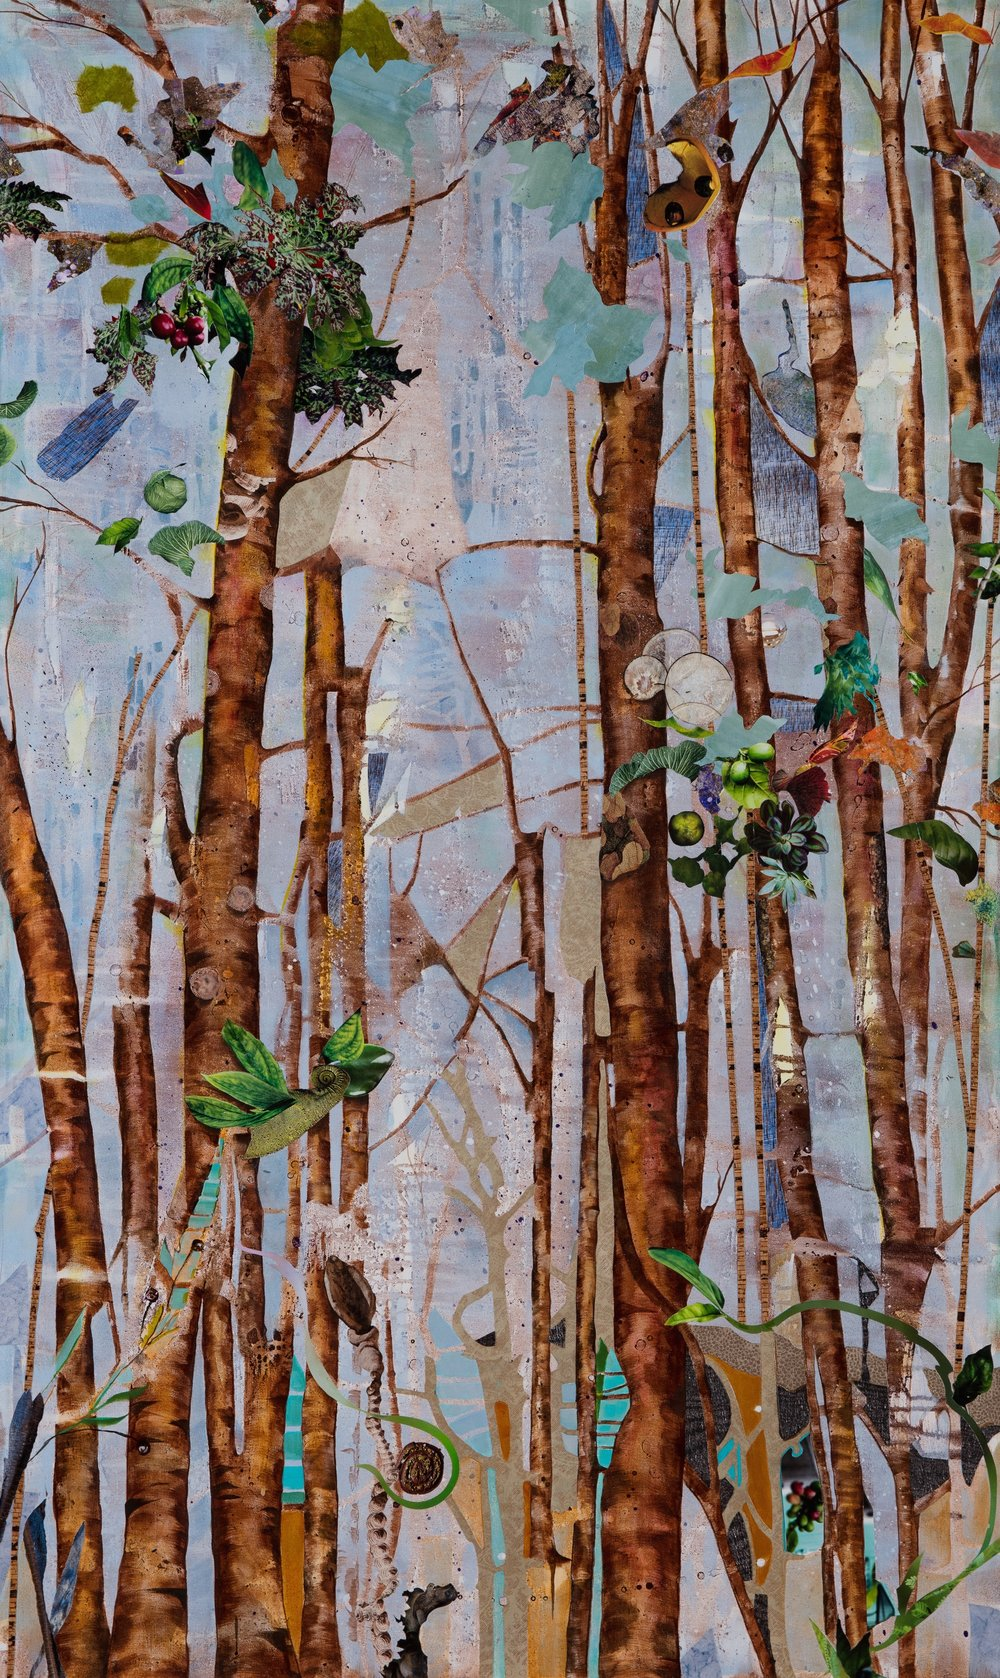 TRUNK SHOW II, 60x36, mixed collage on canvas (2017)